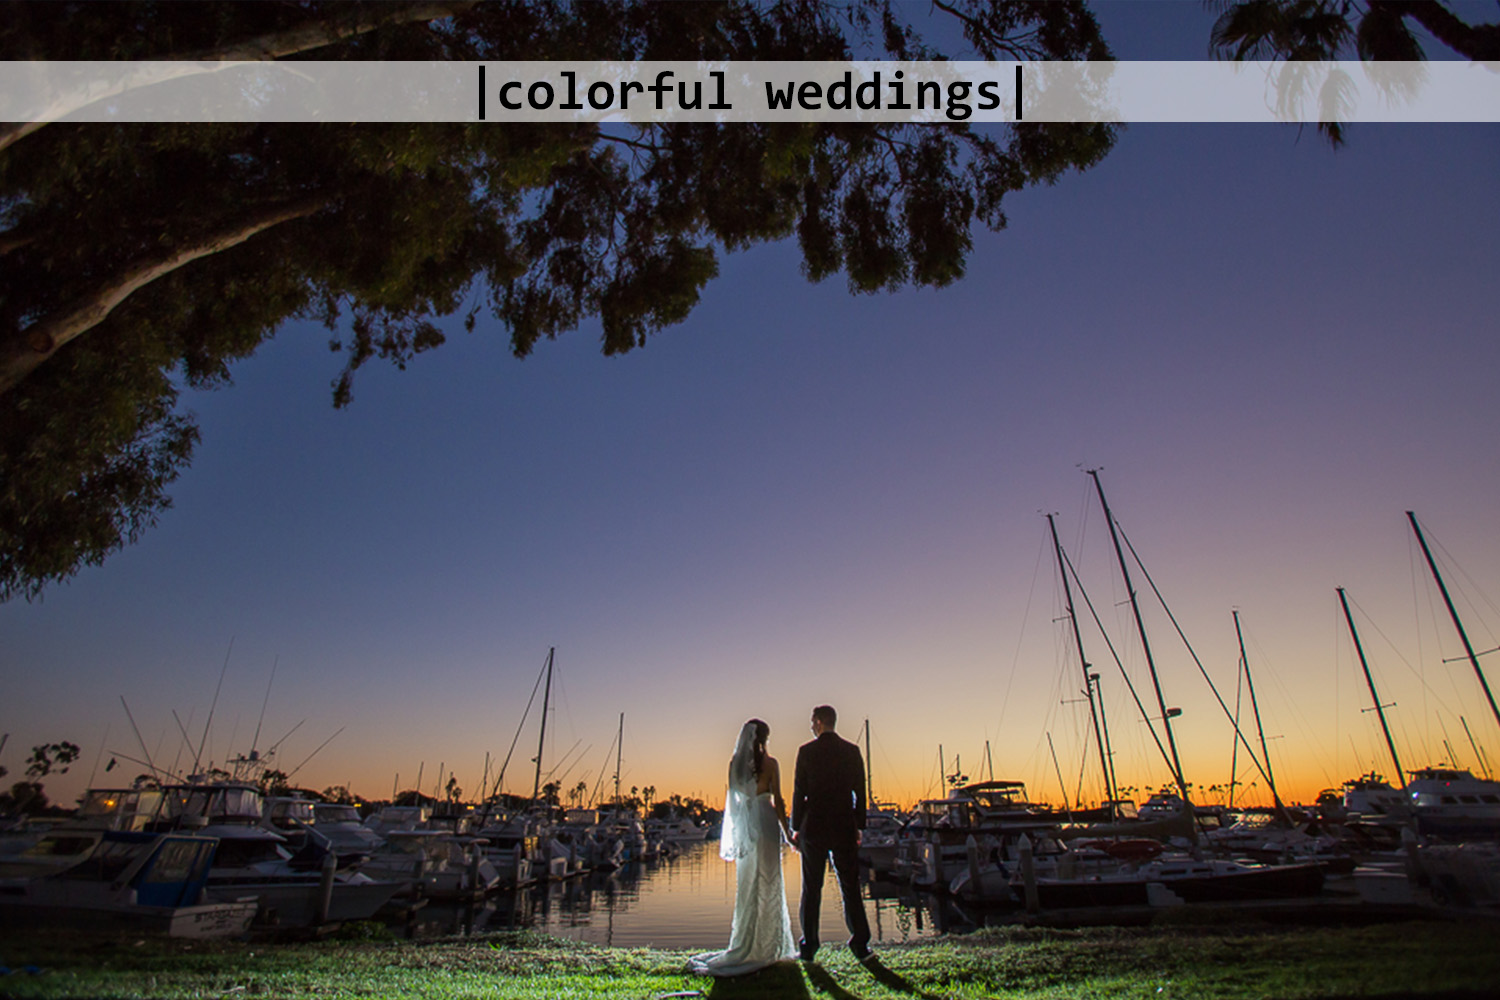 ColorfulWeddings